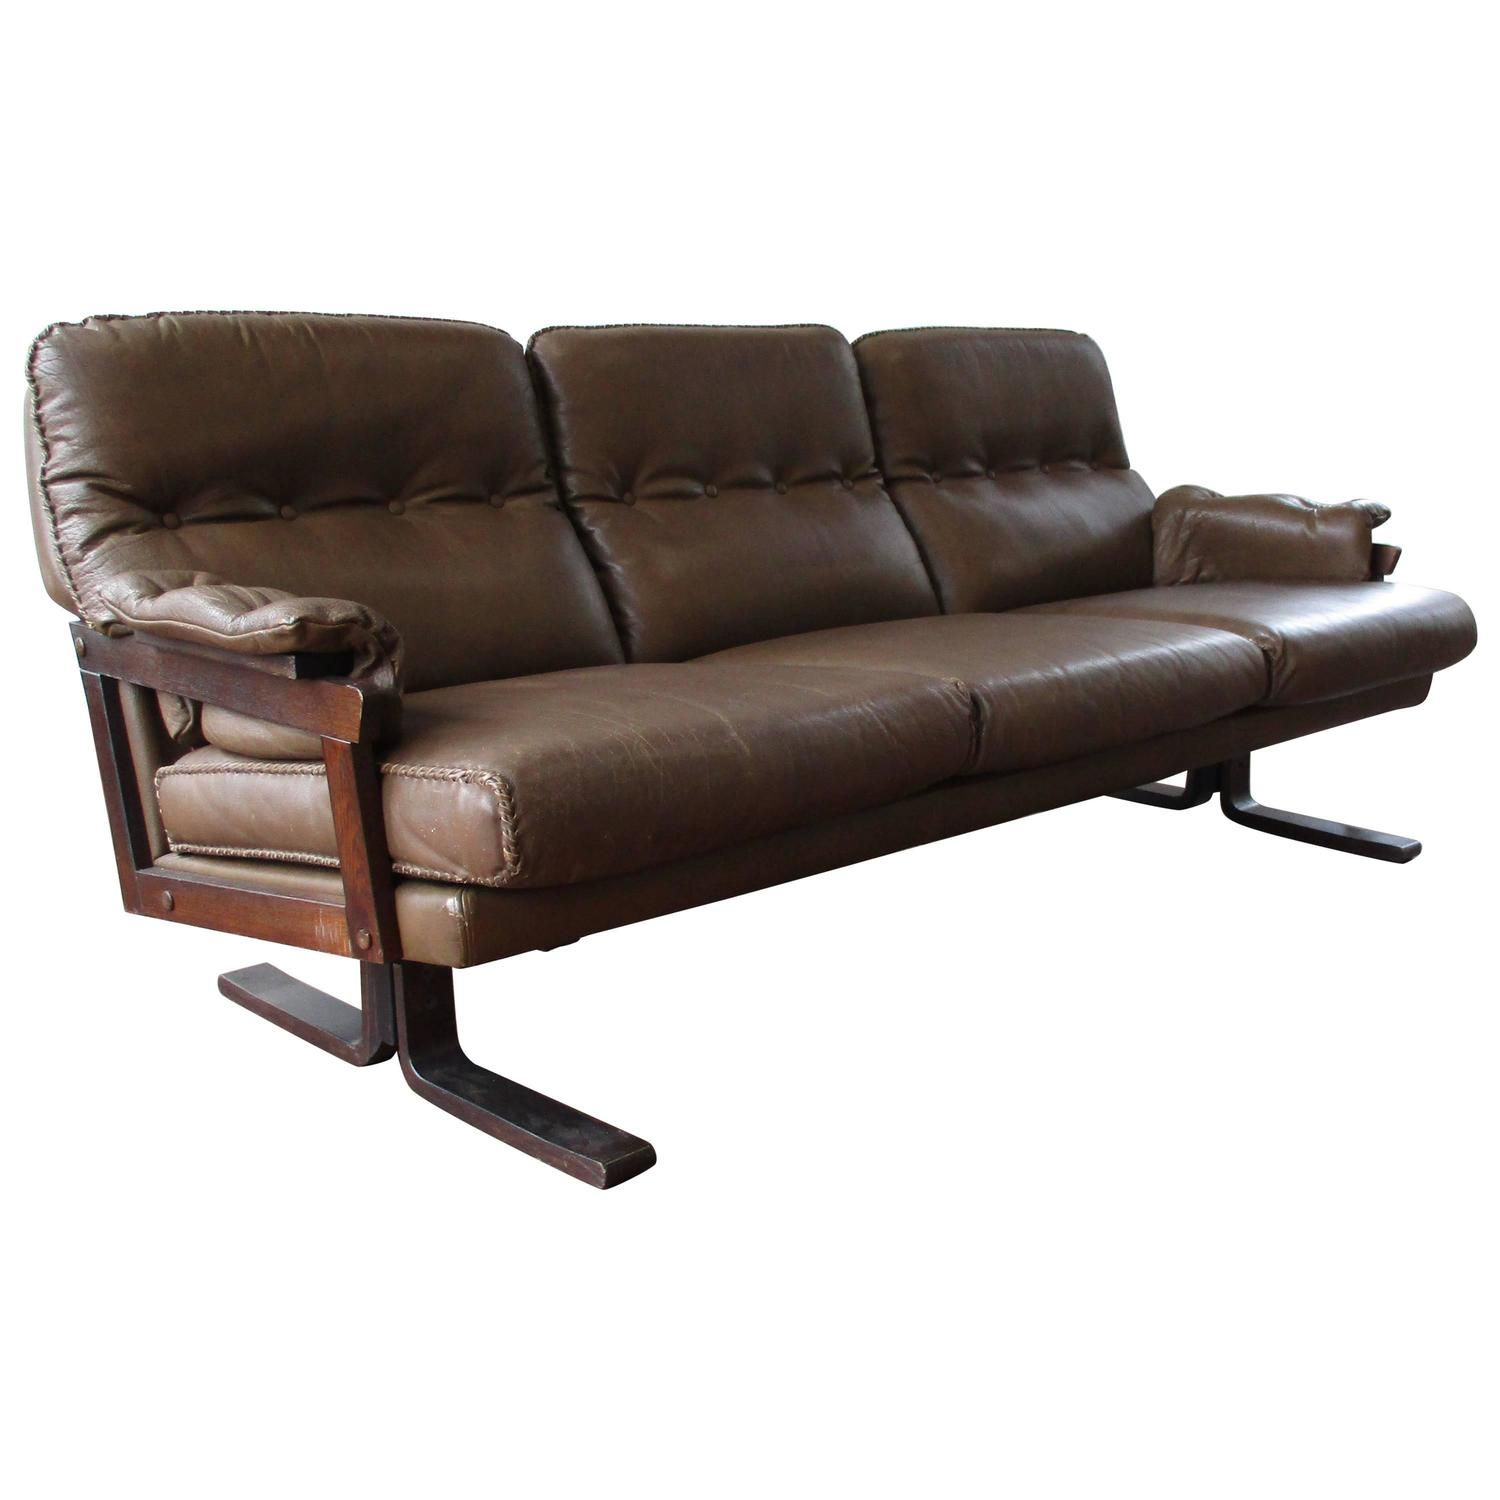 Arne Norell Leather Sofa With Hand Stitching 1stdibs Com Leather Sofa Vintage Dining Room Table Furniture